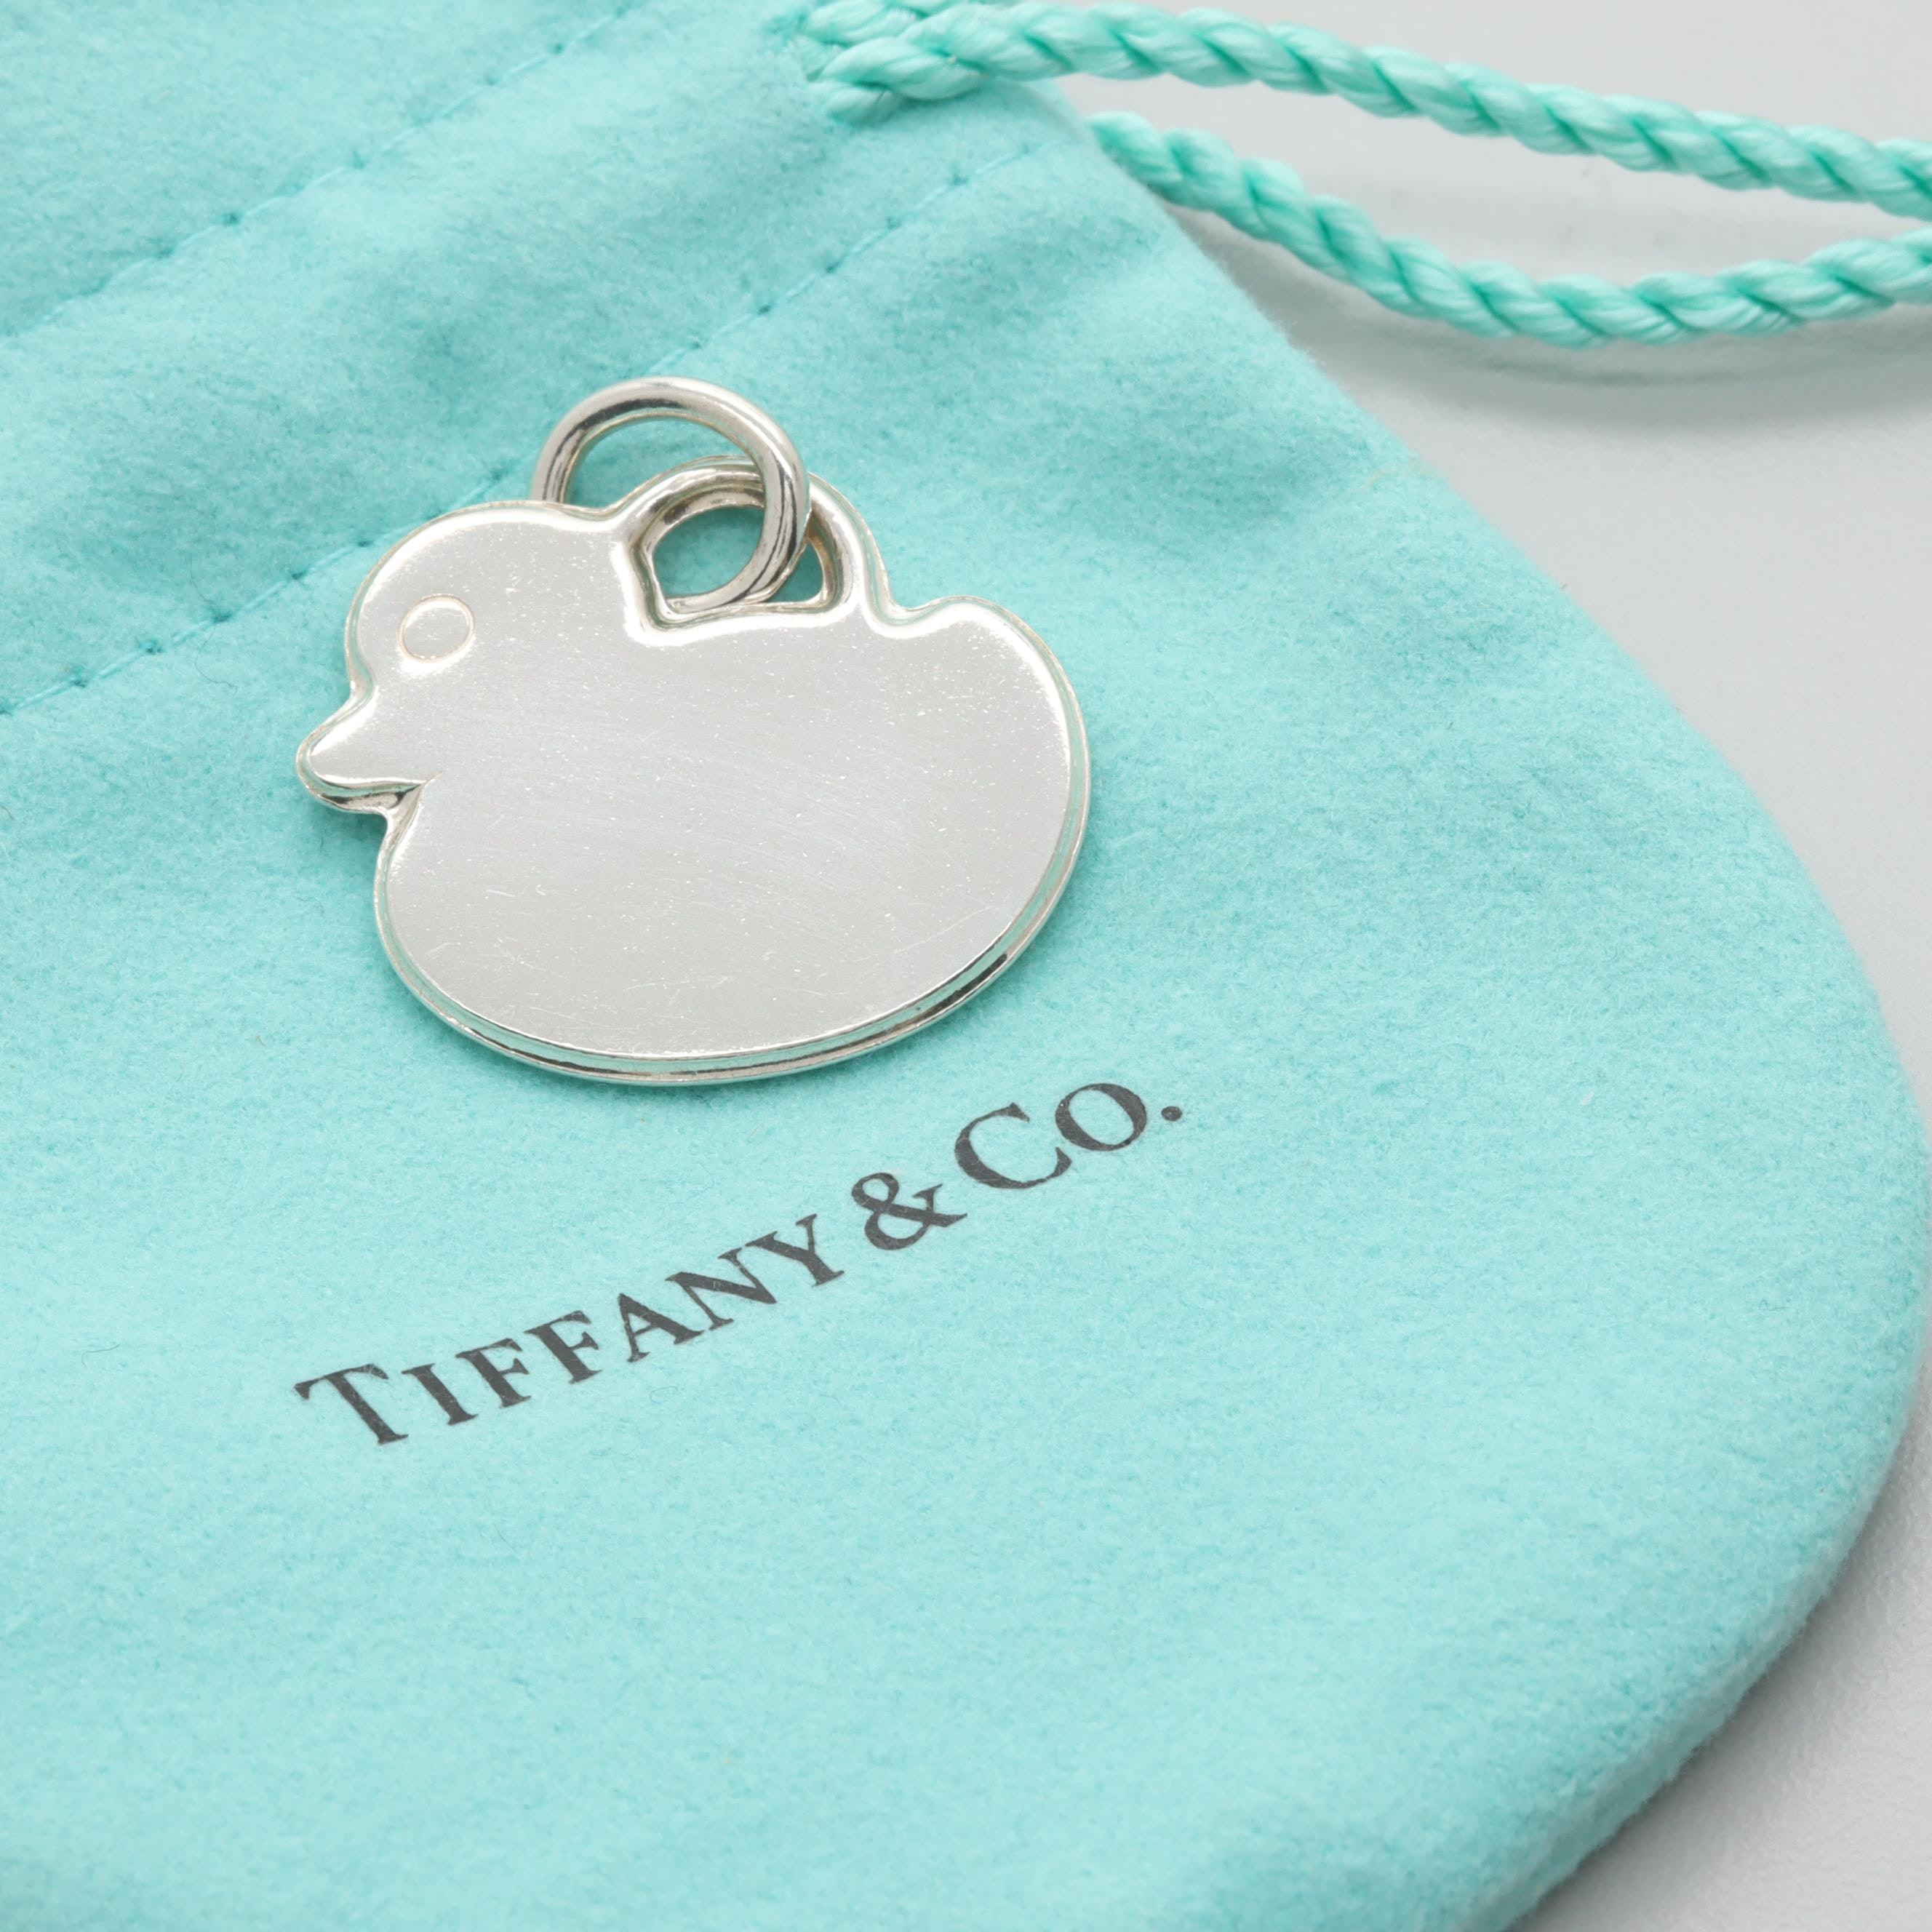 Tiffany & Co. Sterling Silver Duck Charm